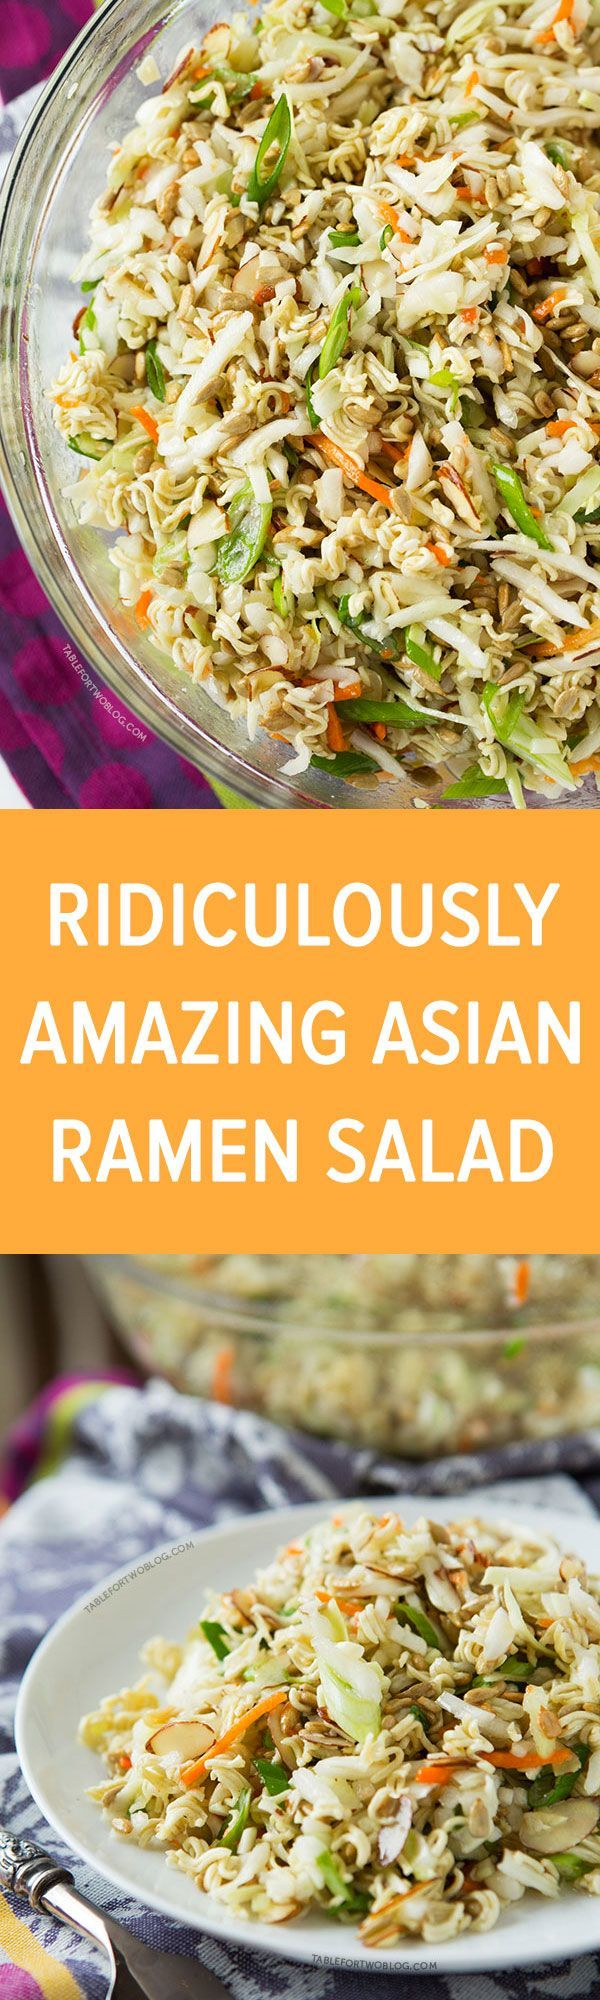 This ridiculously amazing Asian ramen salad will have you and your guests going back for thirds and fourths. Everyone will be asking for the recipe and you'll want to bring this easy dish to every potluck! (Asian Recipes Salad)